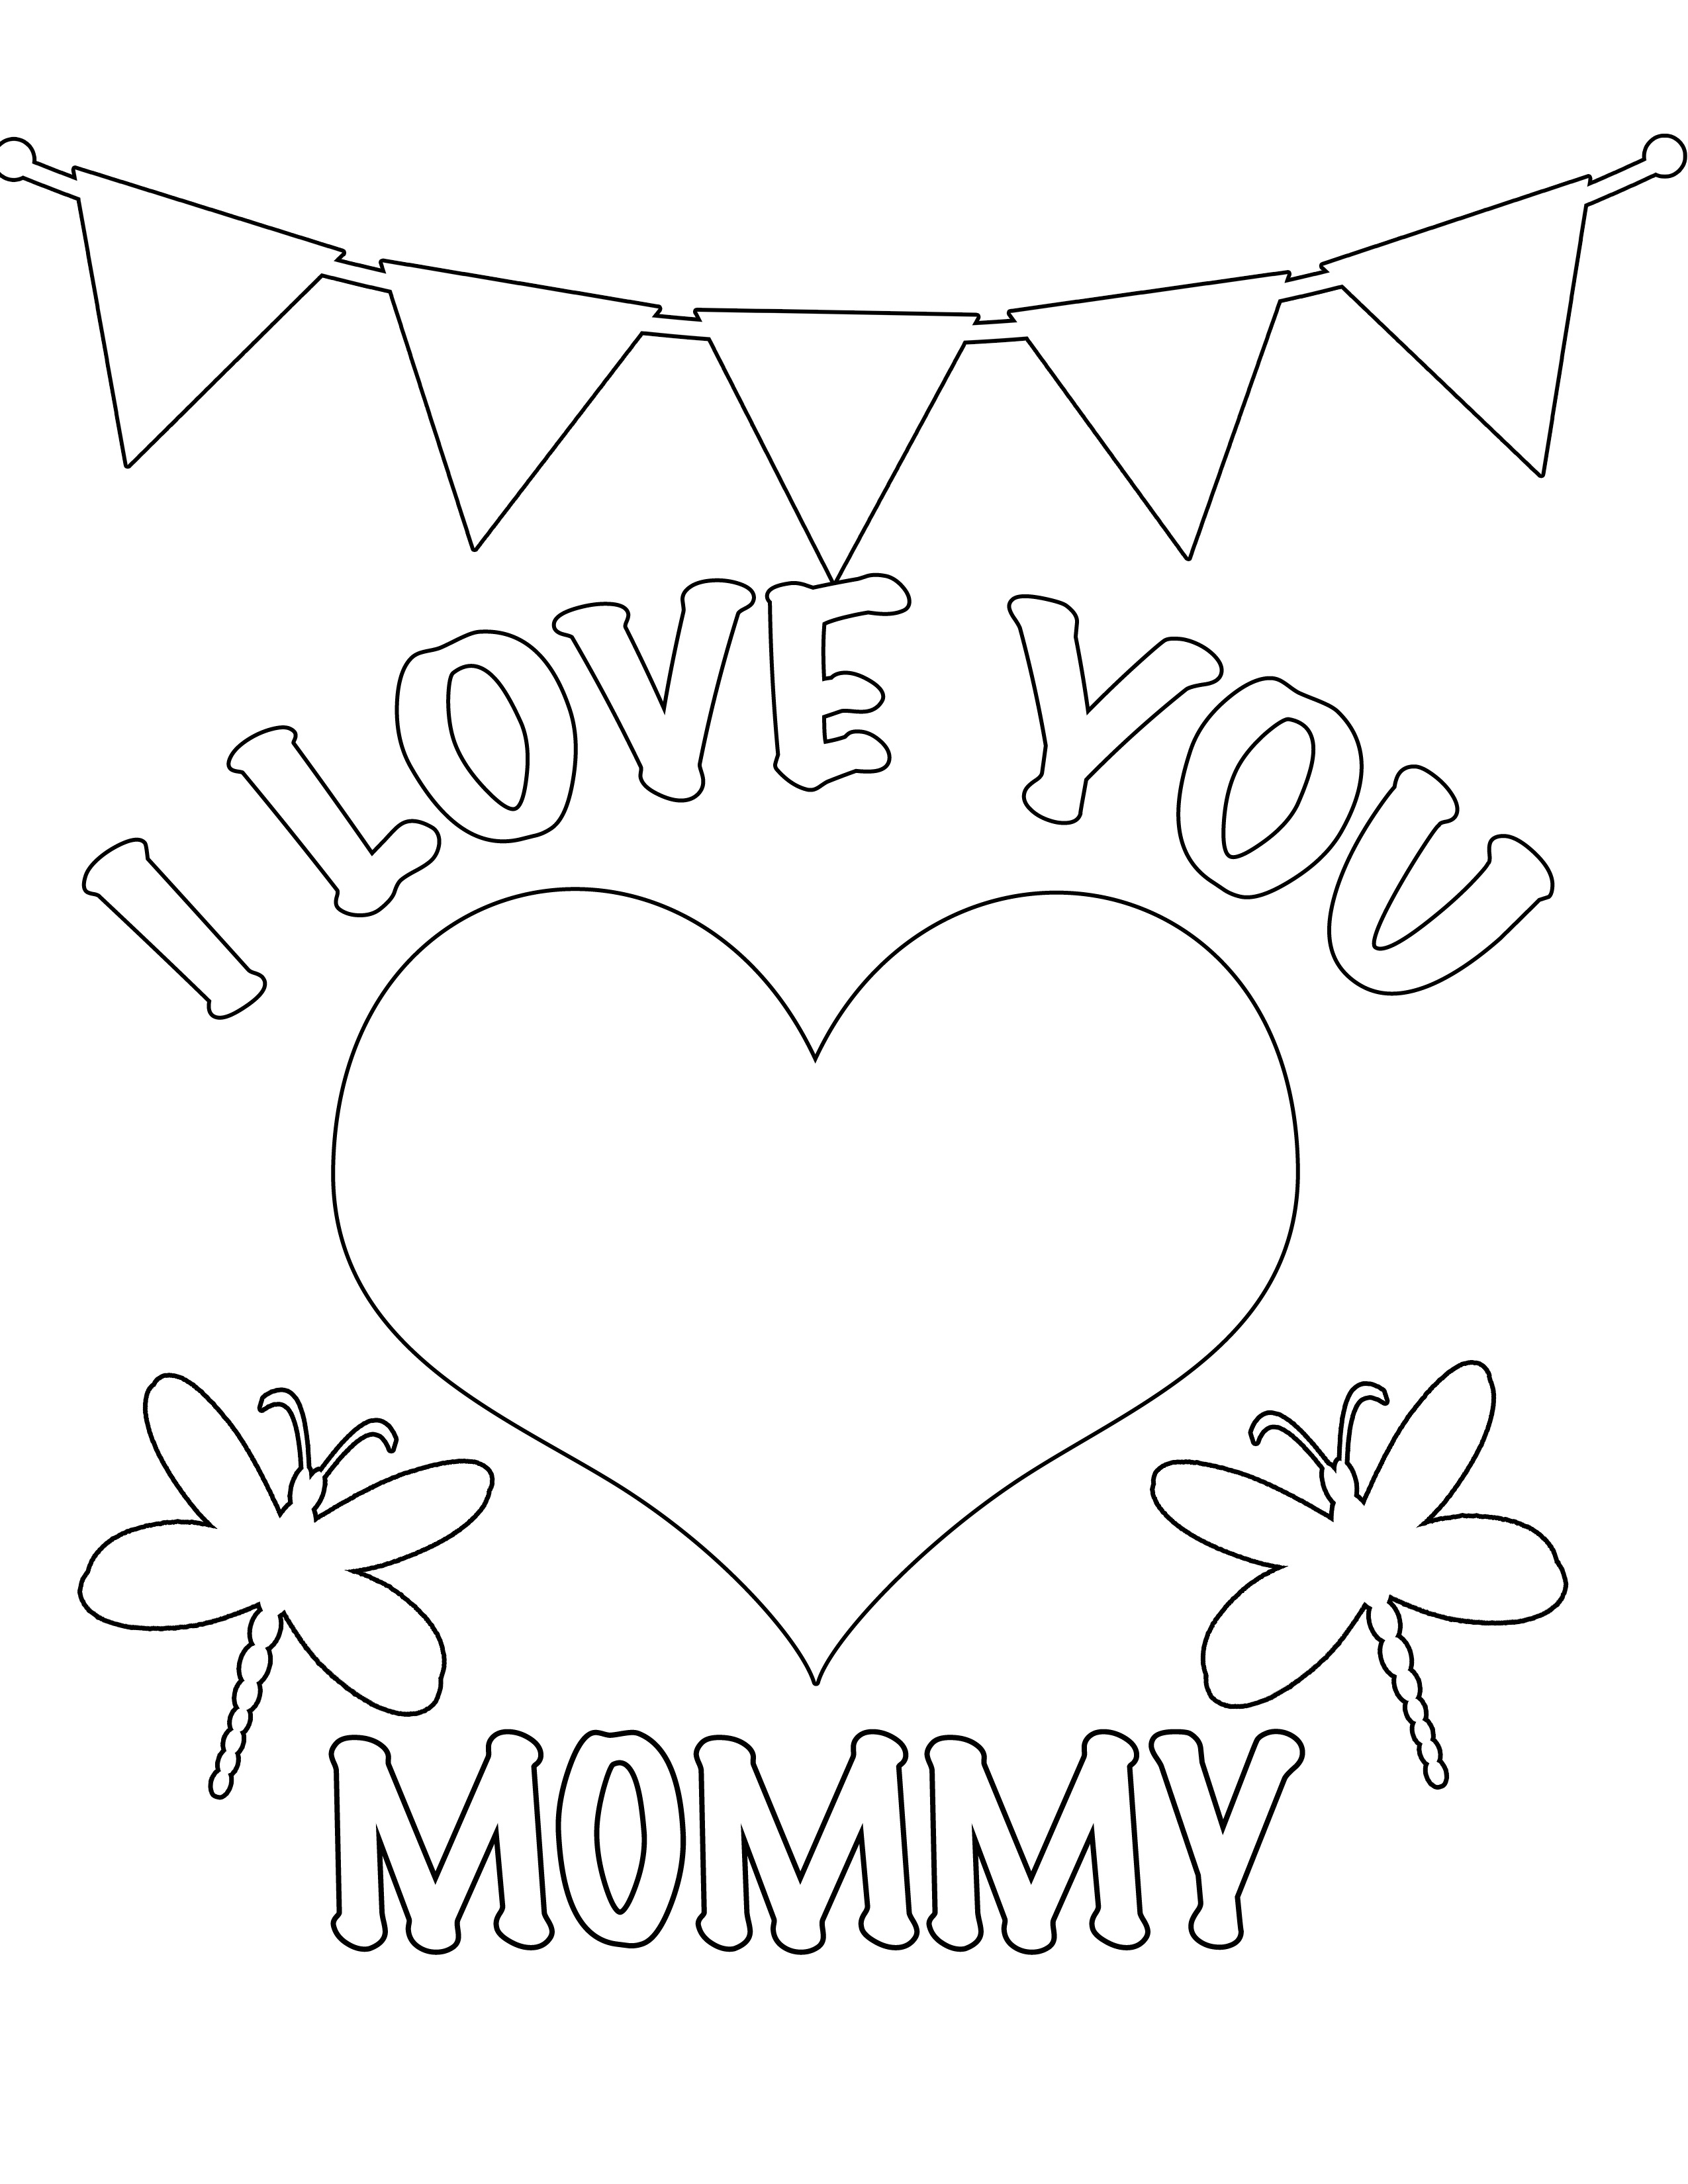 Free Coloring Pages for Kids to Print Preschool